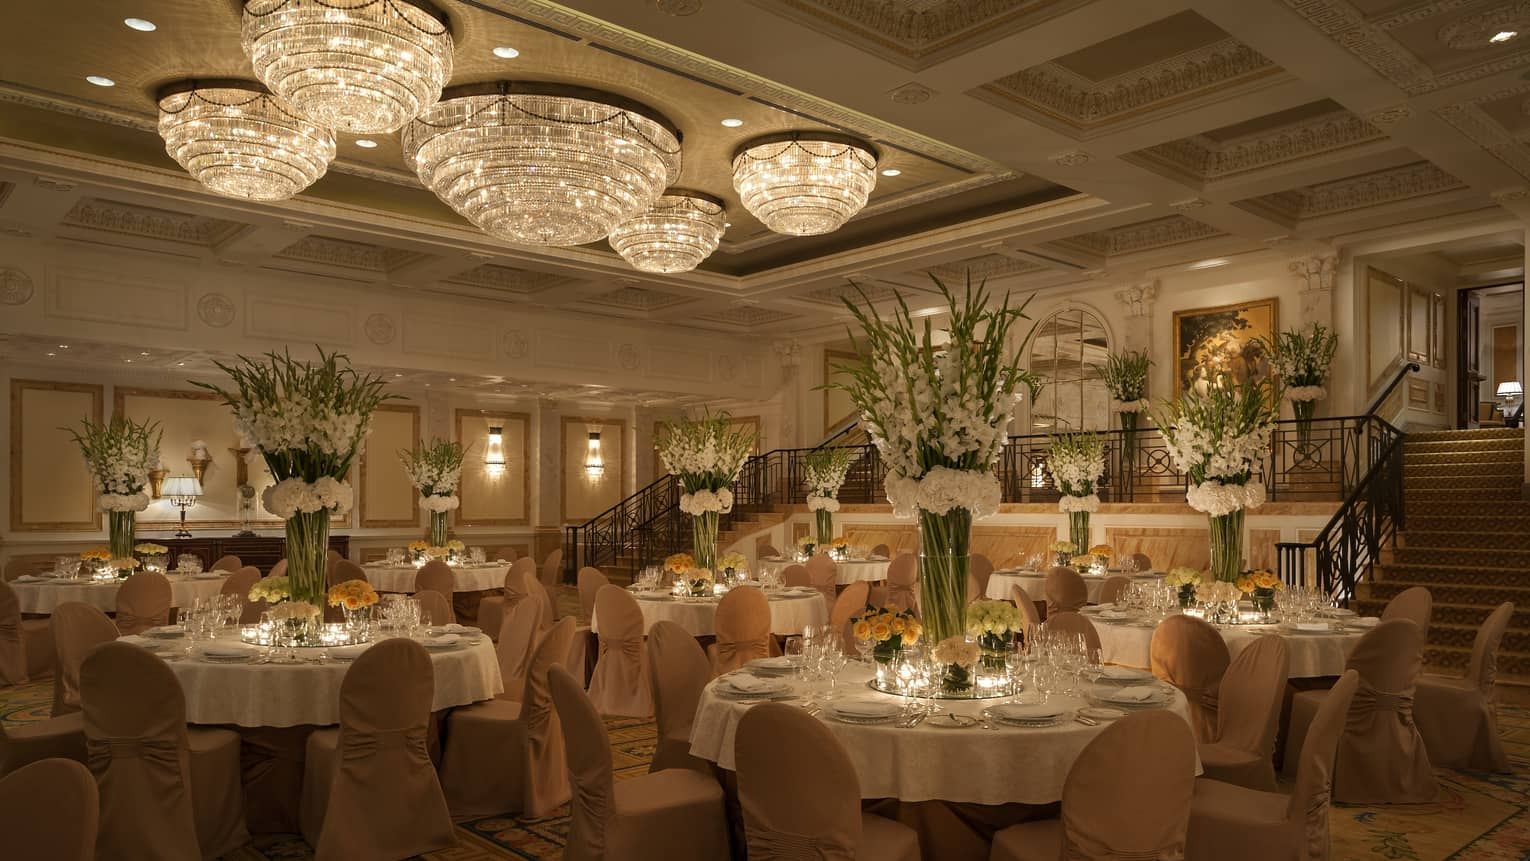 Ballroom banquet with round dining tables and chairs under small crystal dome chandeliers